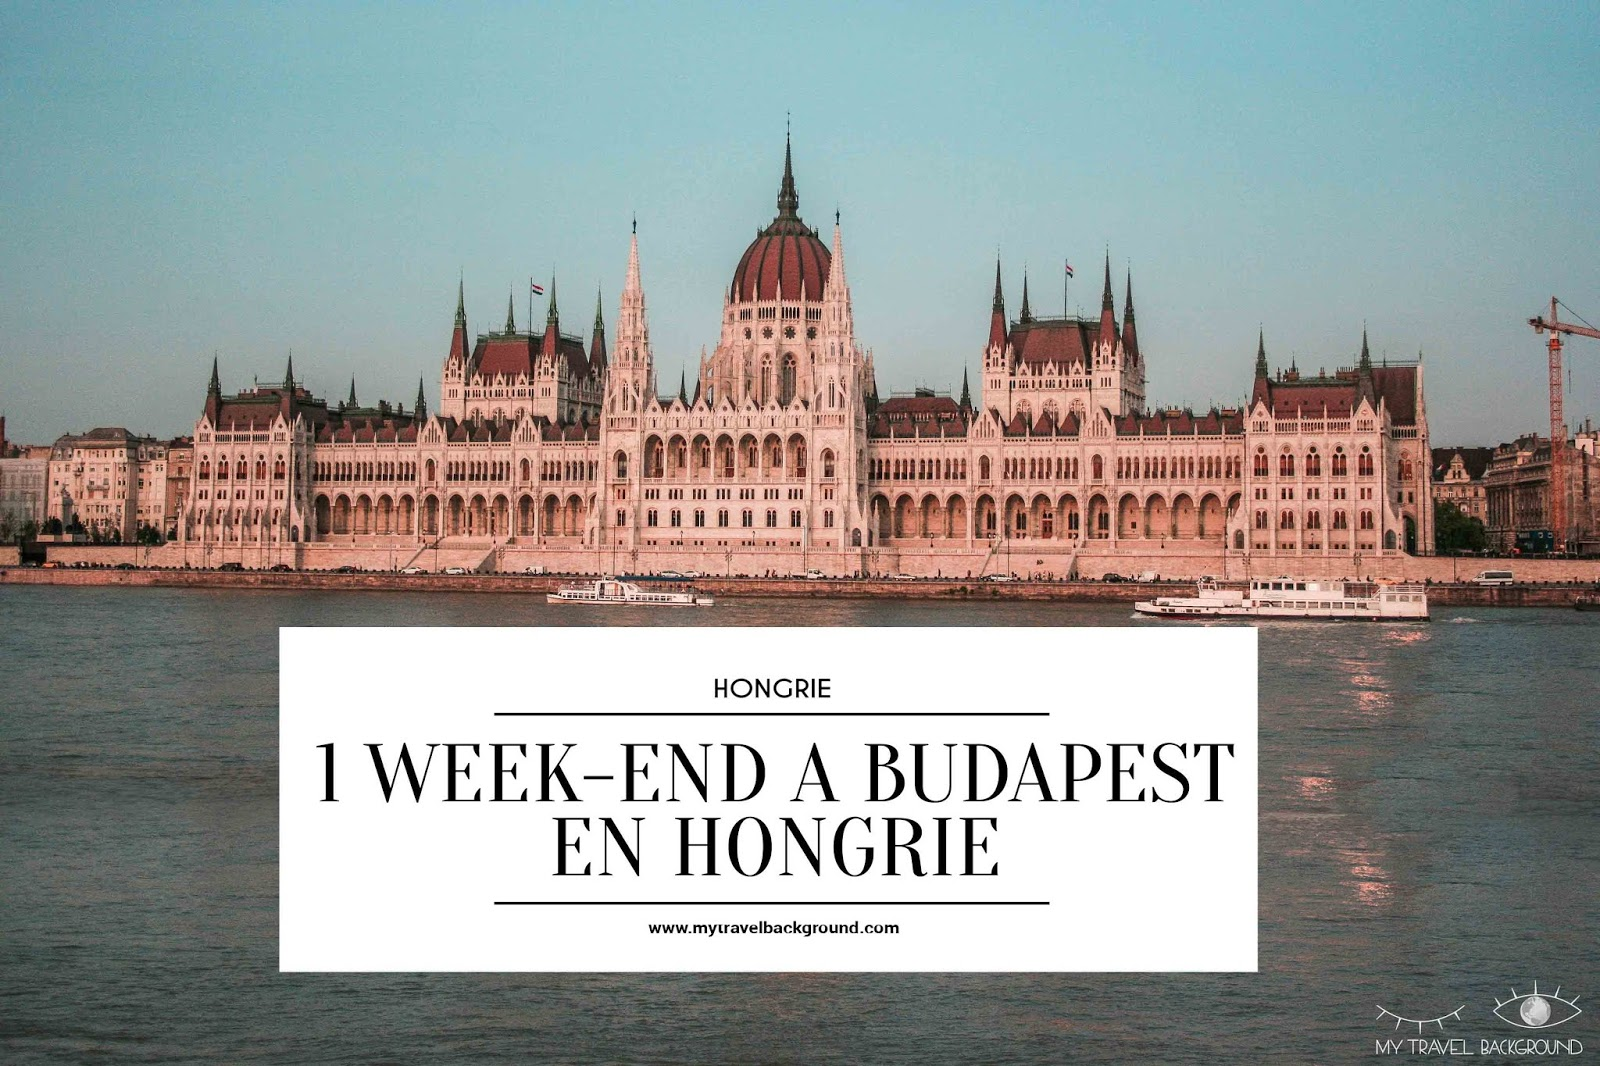 My Travel Background : 1 week-end à Budapest en Hongrie